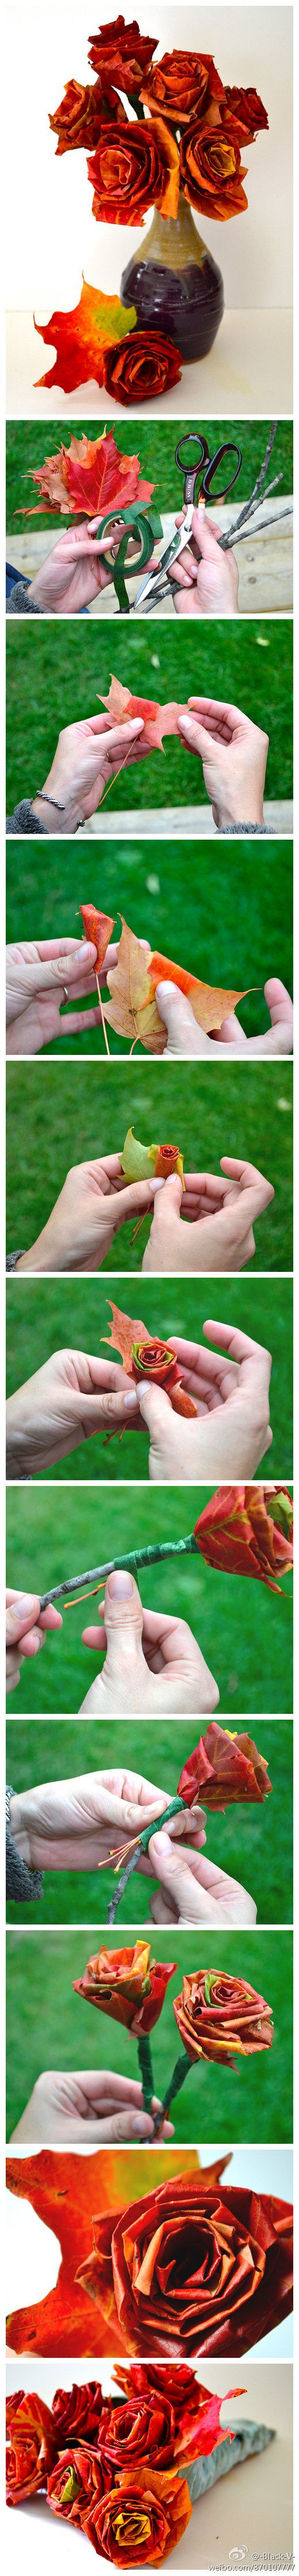 Make roses from fall leaves!